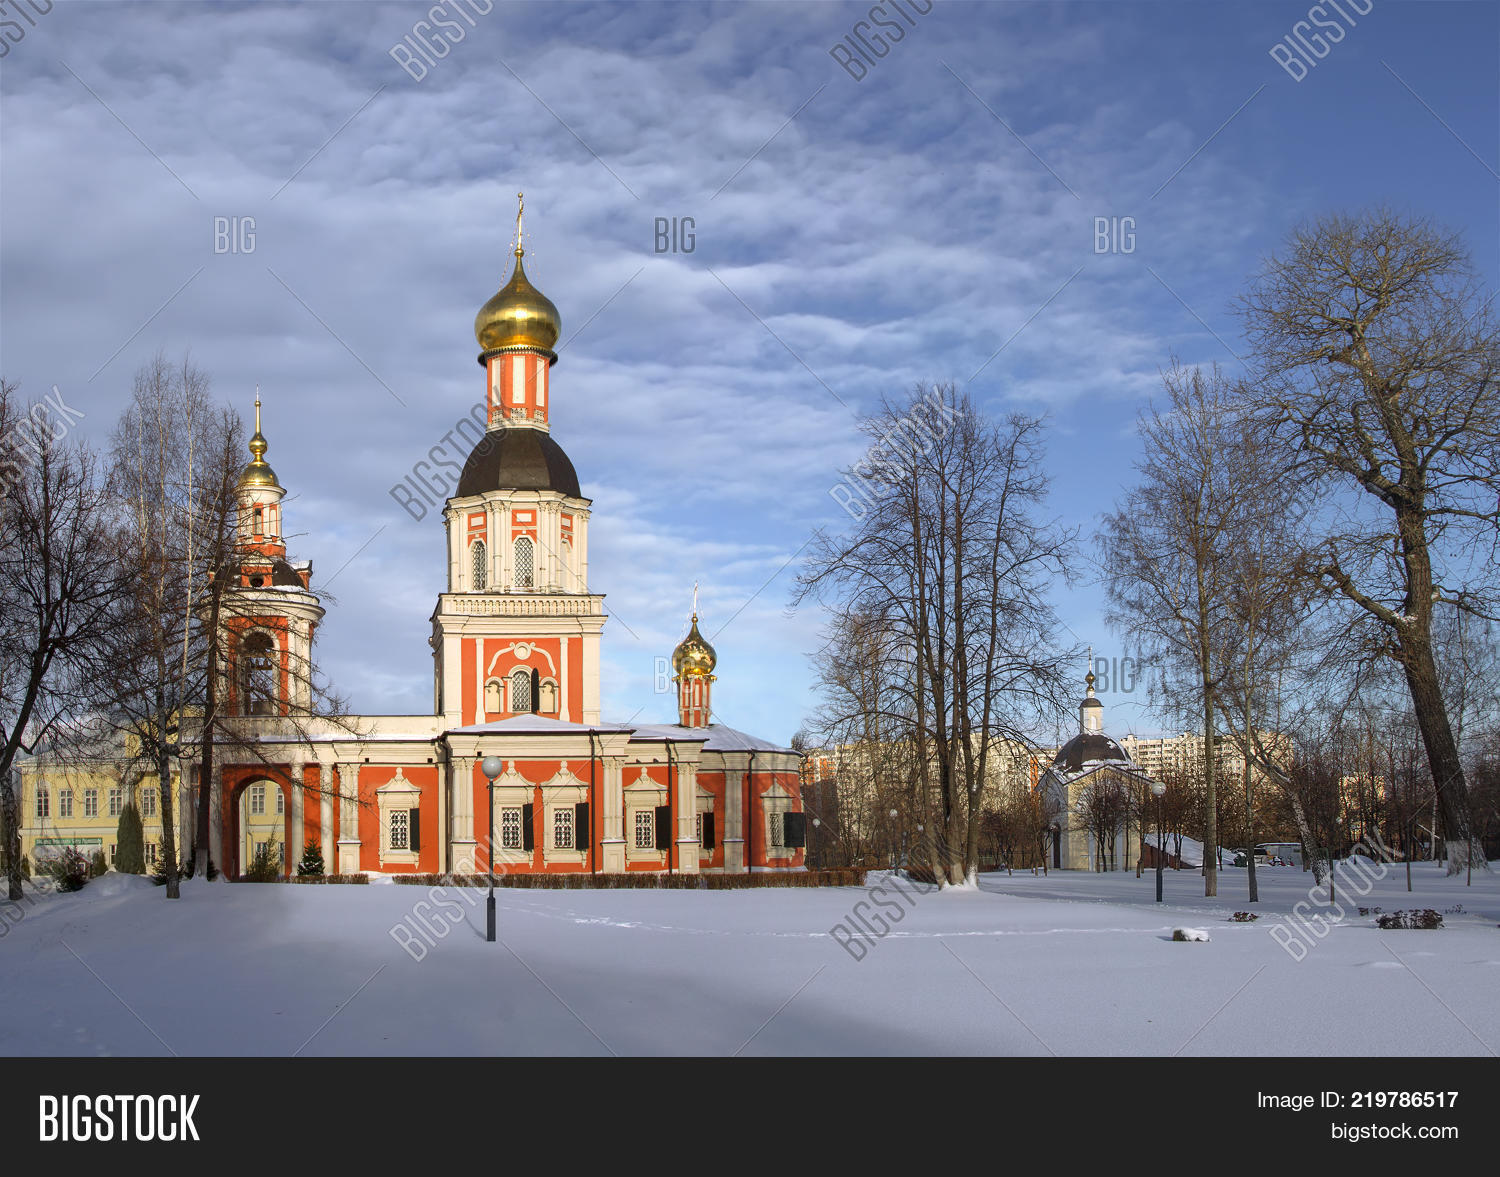 Manor Sviblovo in Moscow: description, history and interesting facts 88